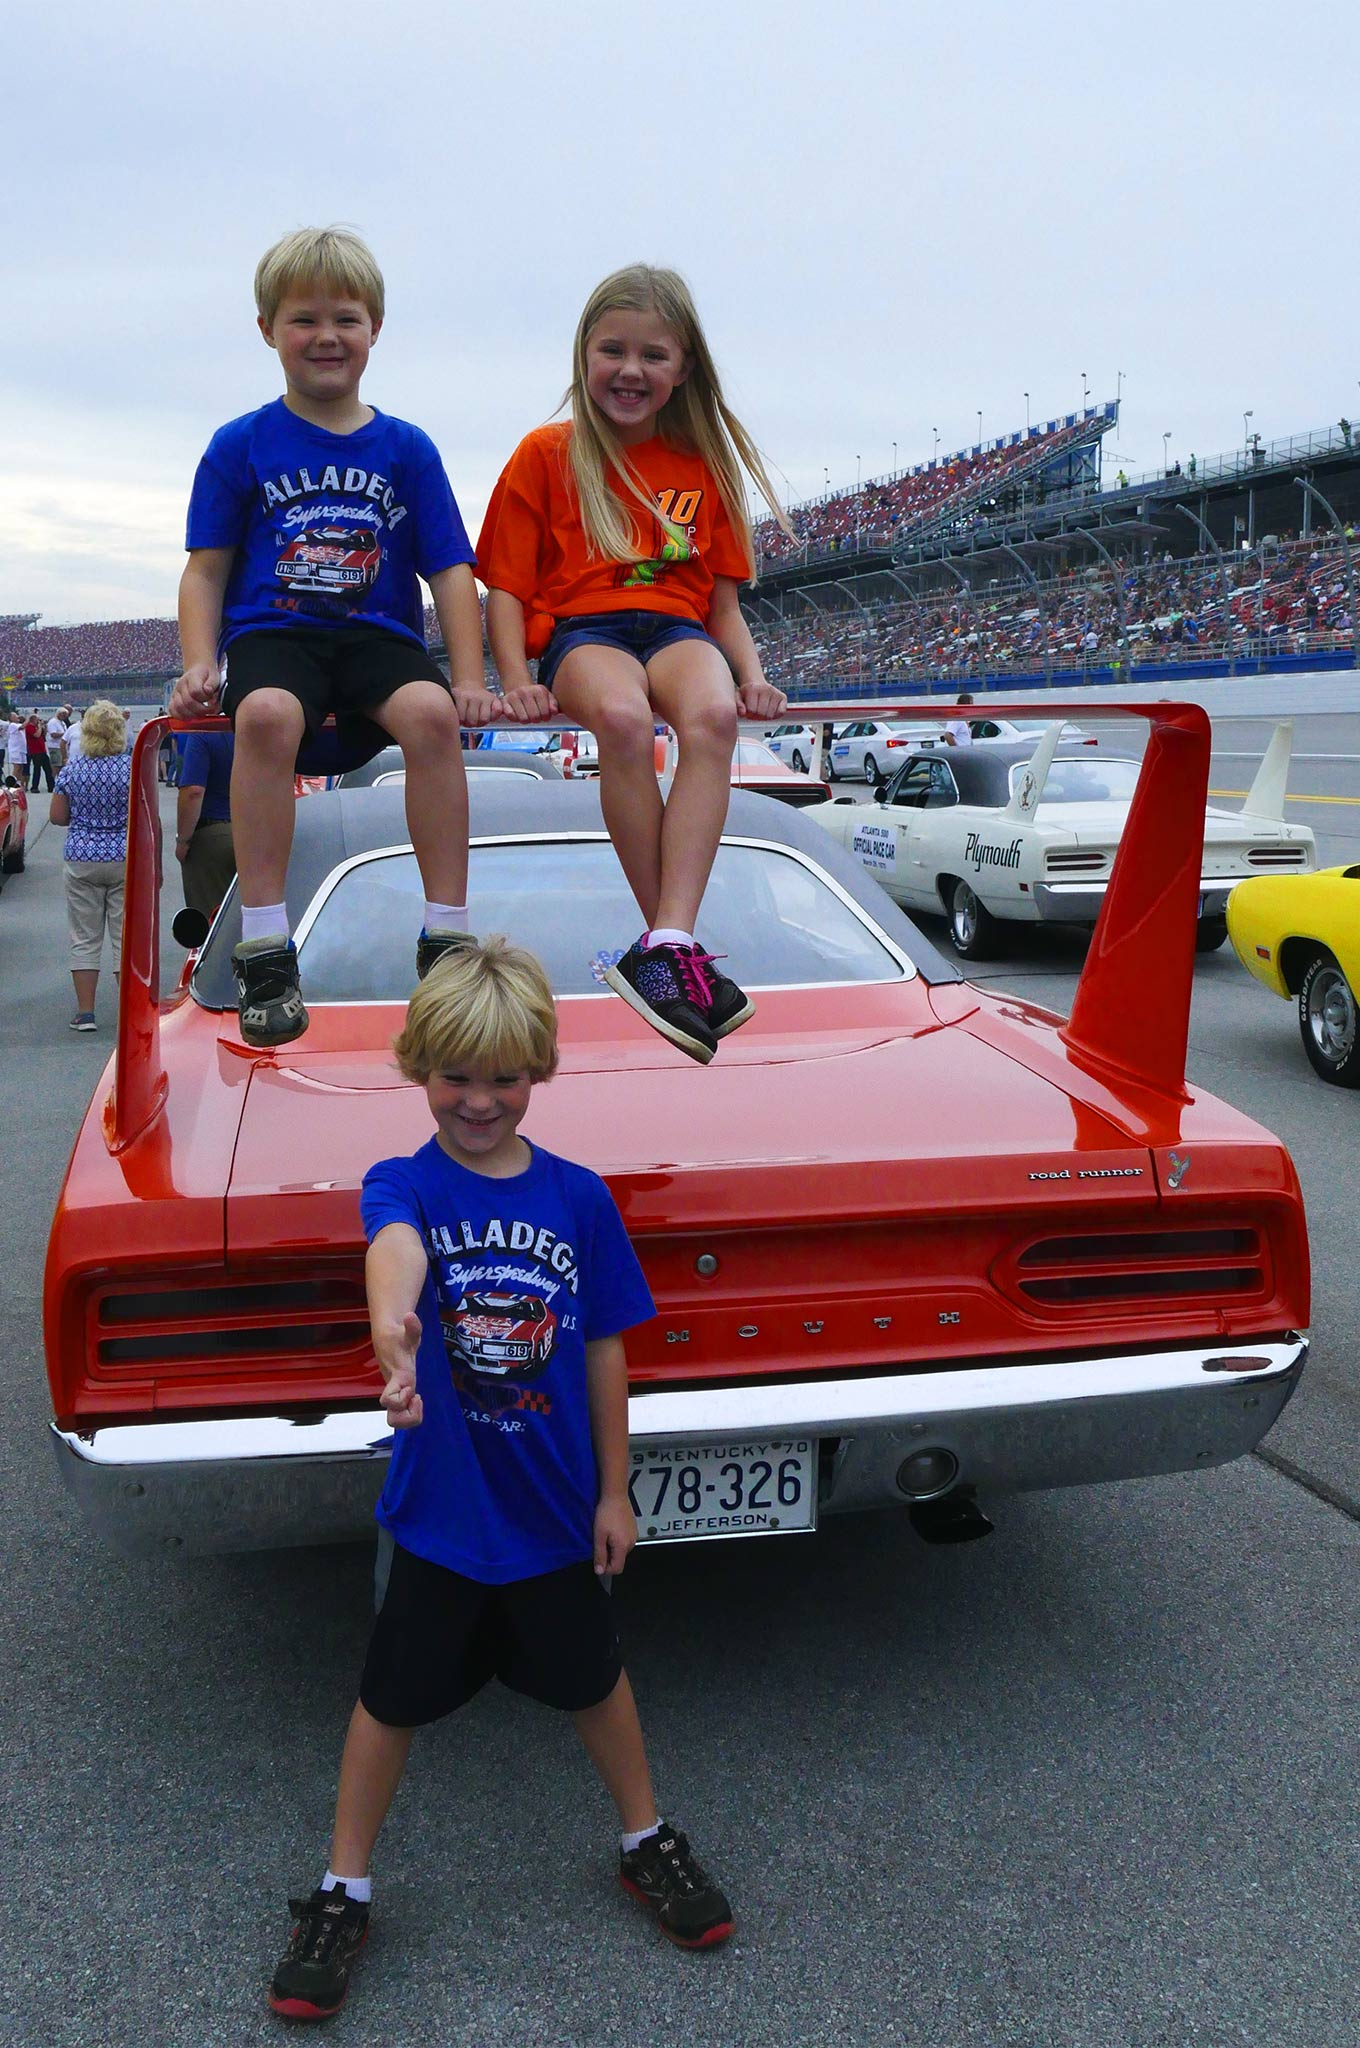 Getting to sit on the wing of a Superbird in front of a Sunday crowd at Talladega, priceless!